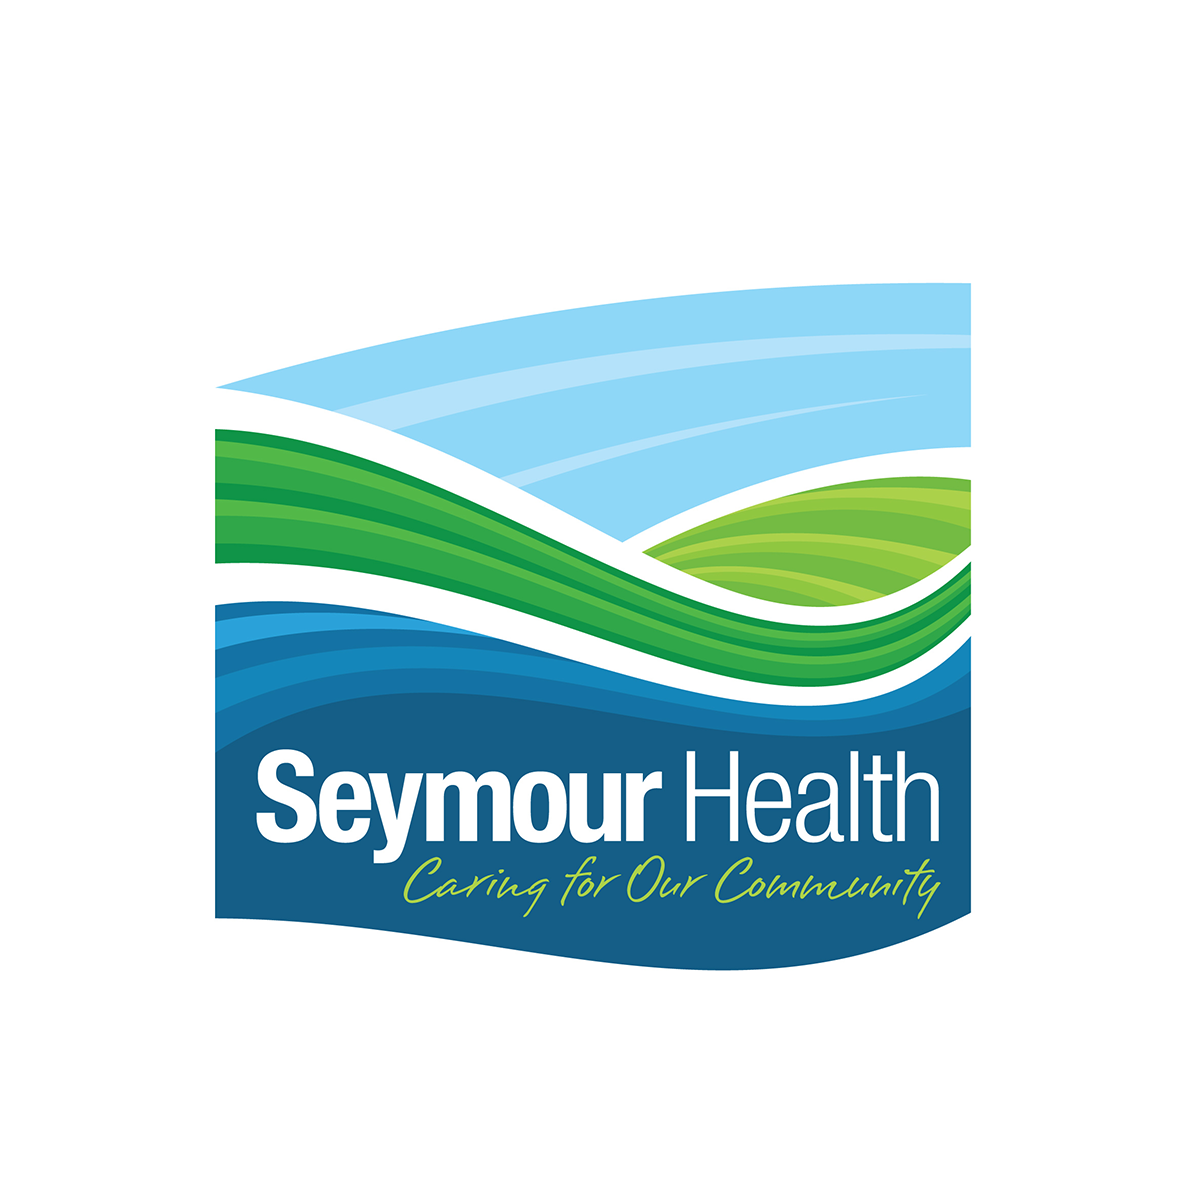 Seymour Health